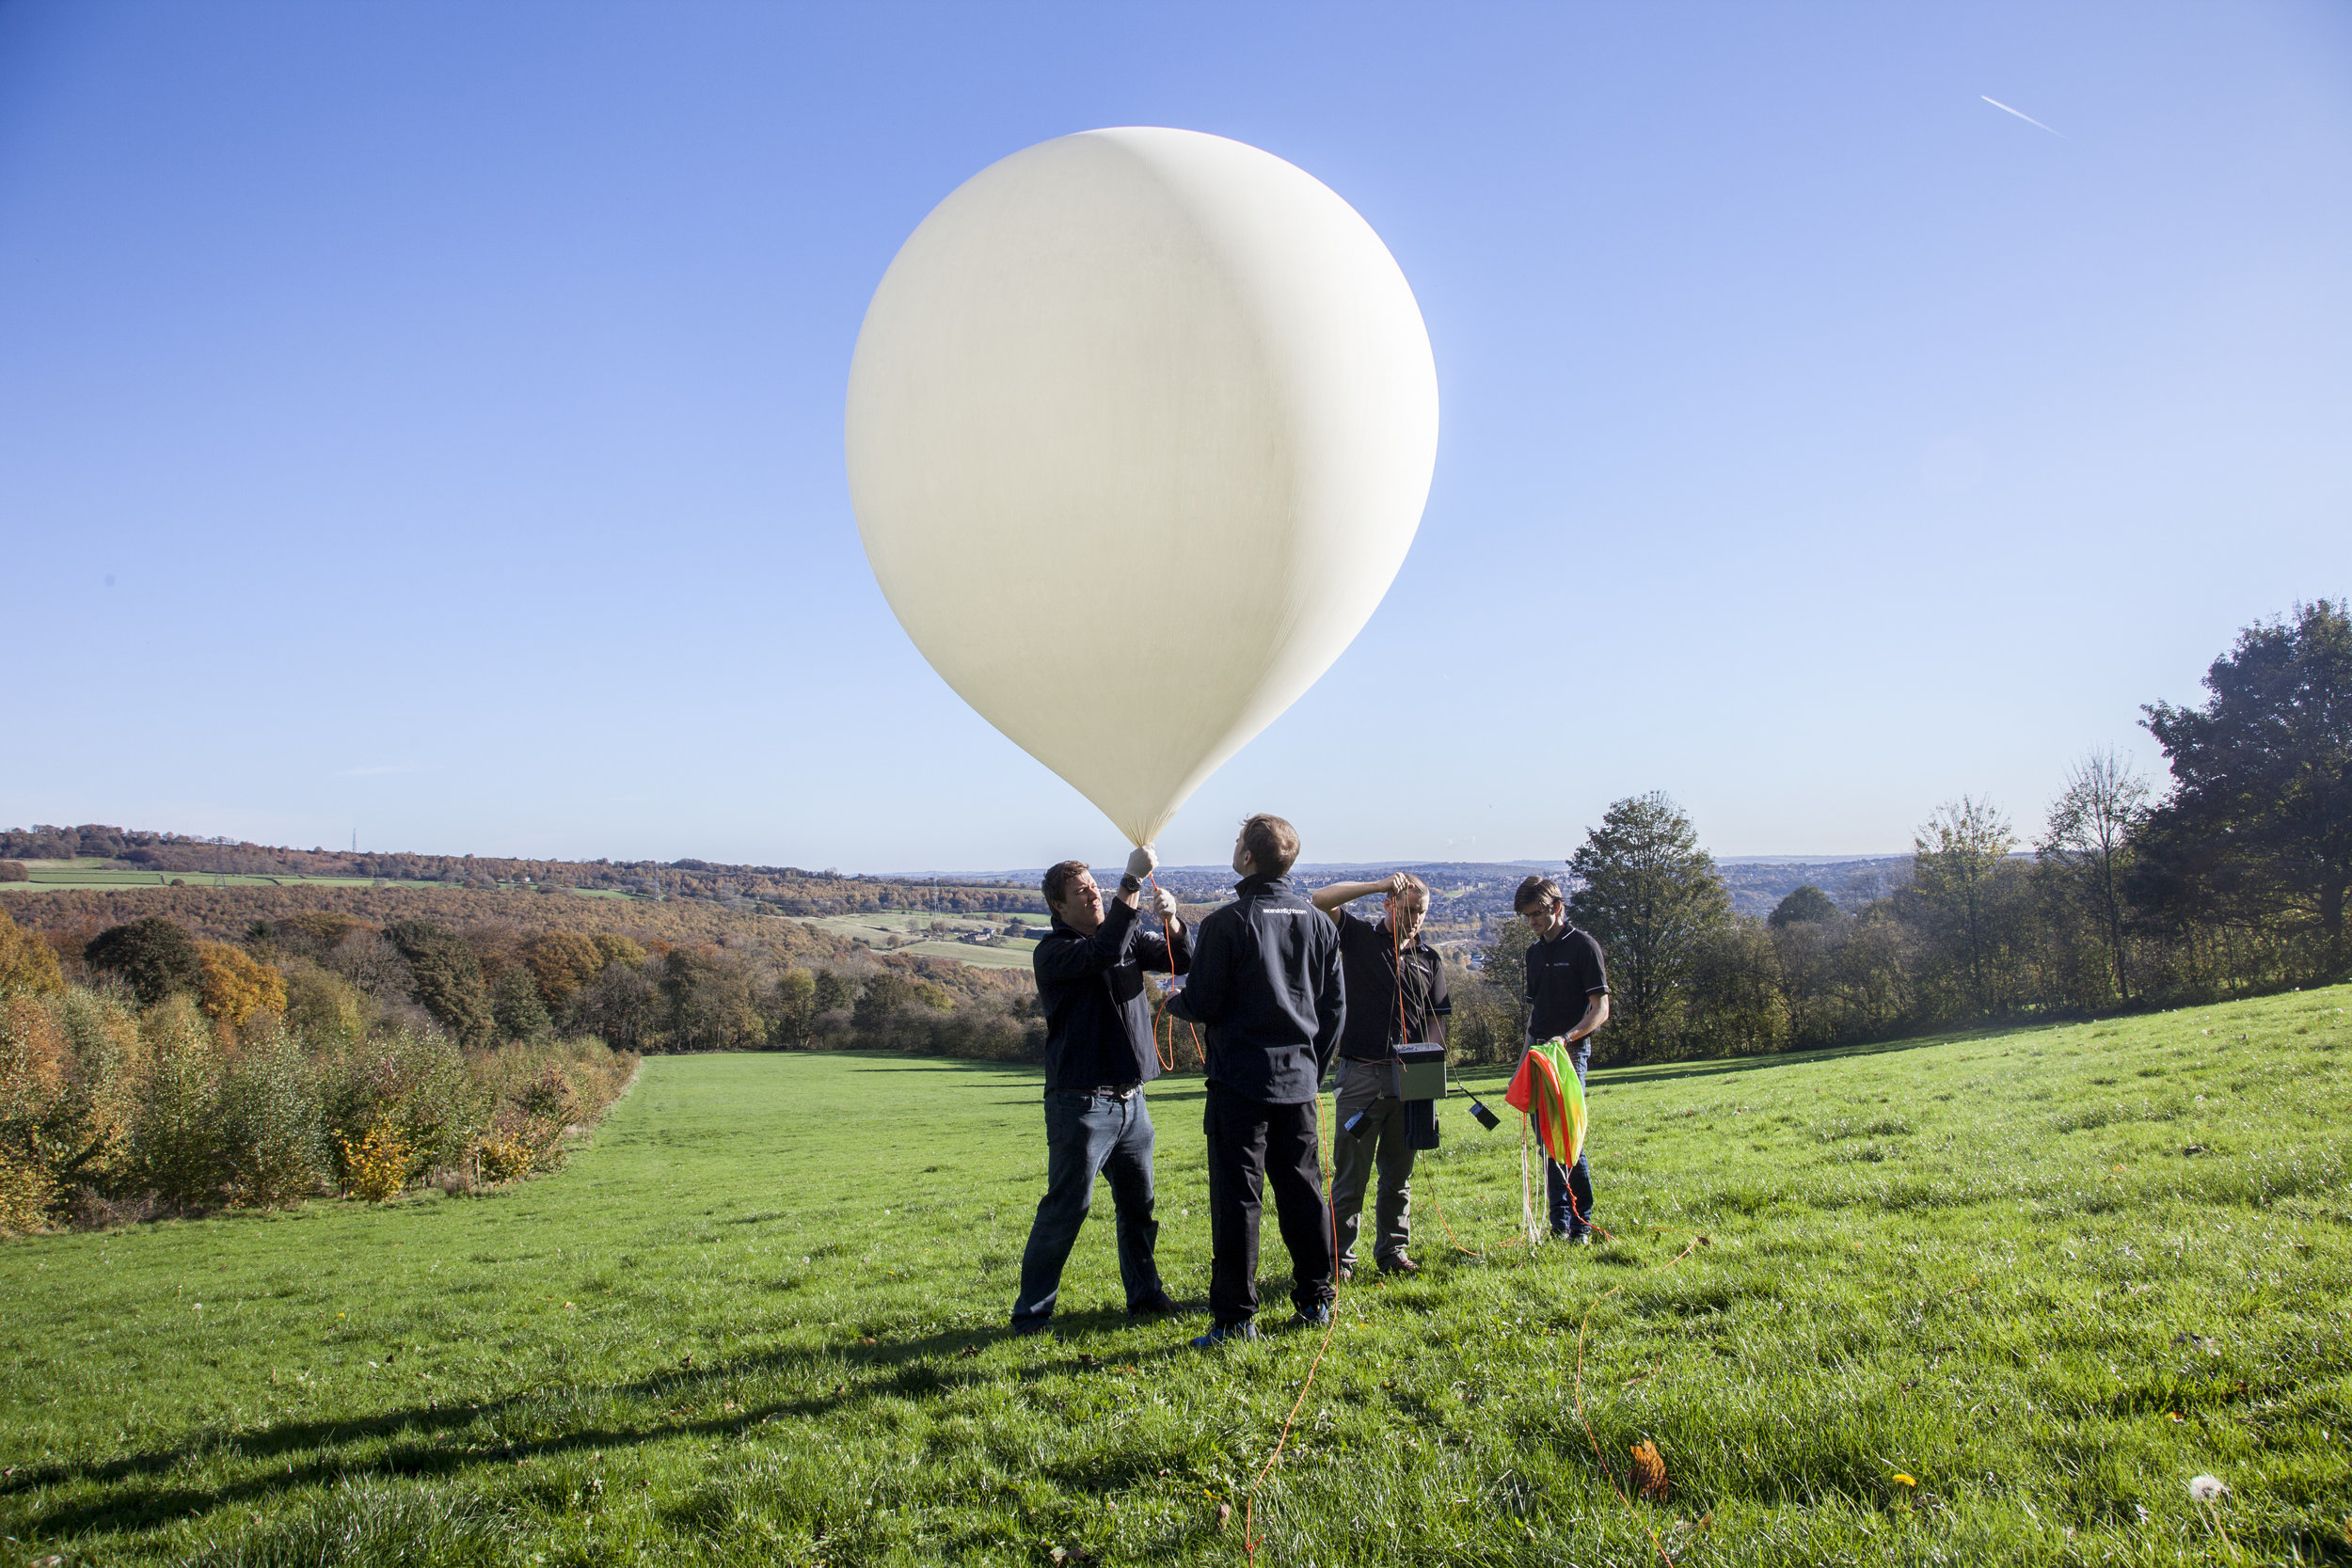 The Ascension Flights team preparing to launch a balloon which will scatter ashes in space